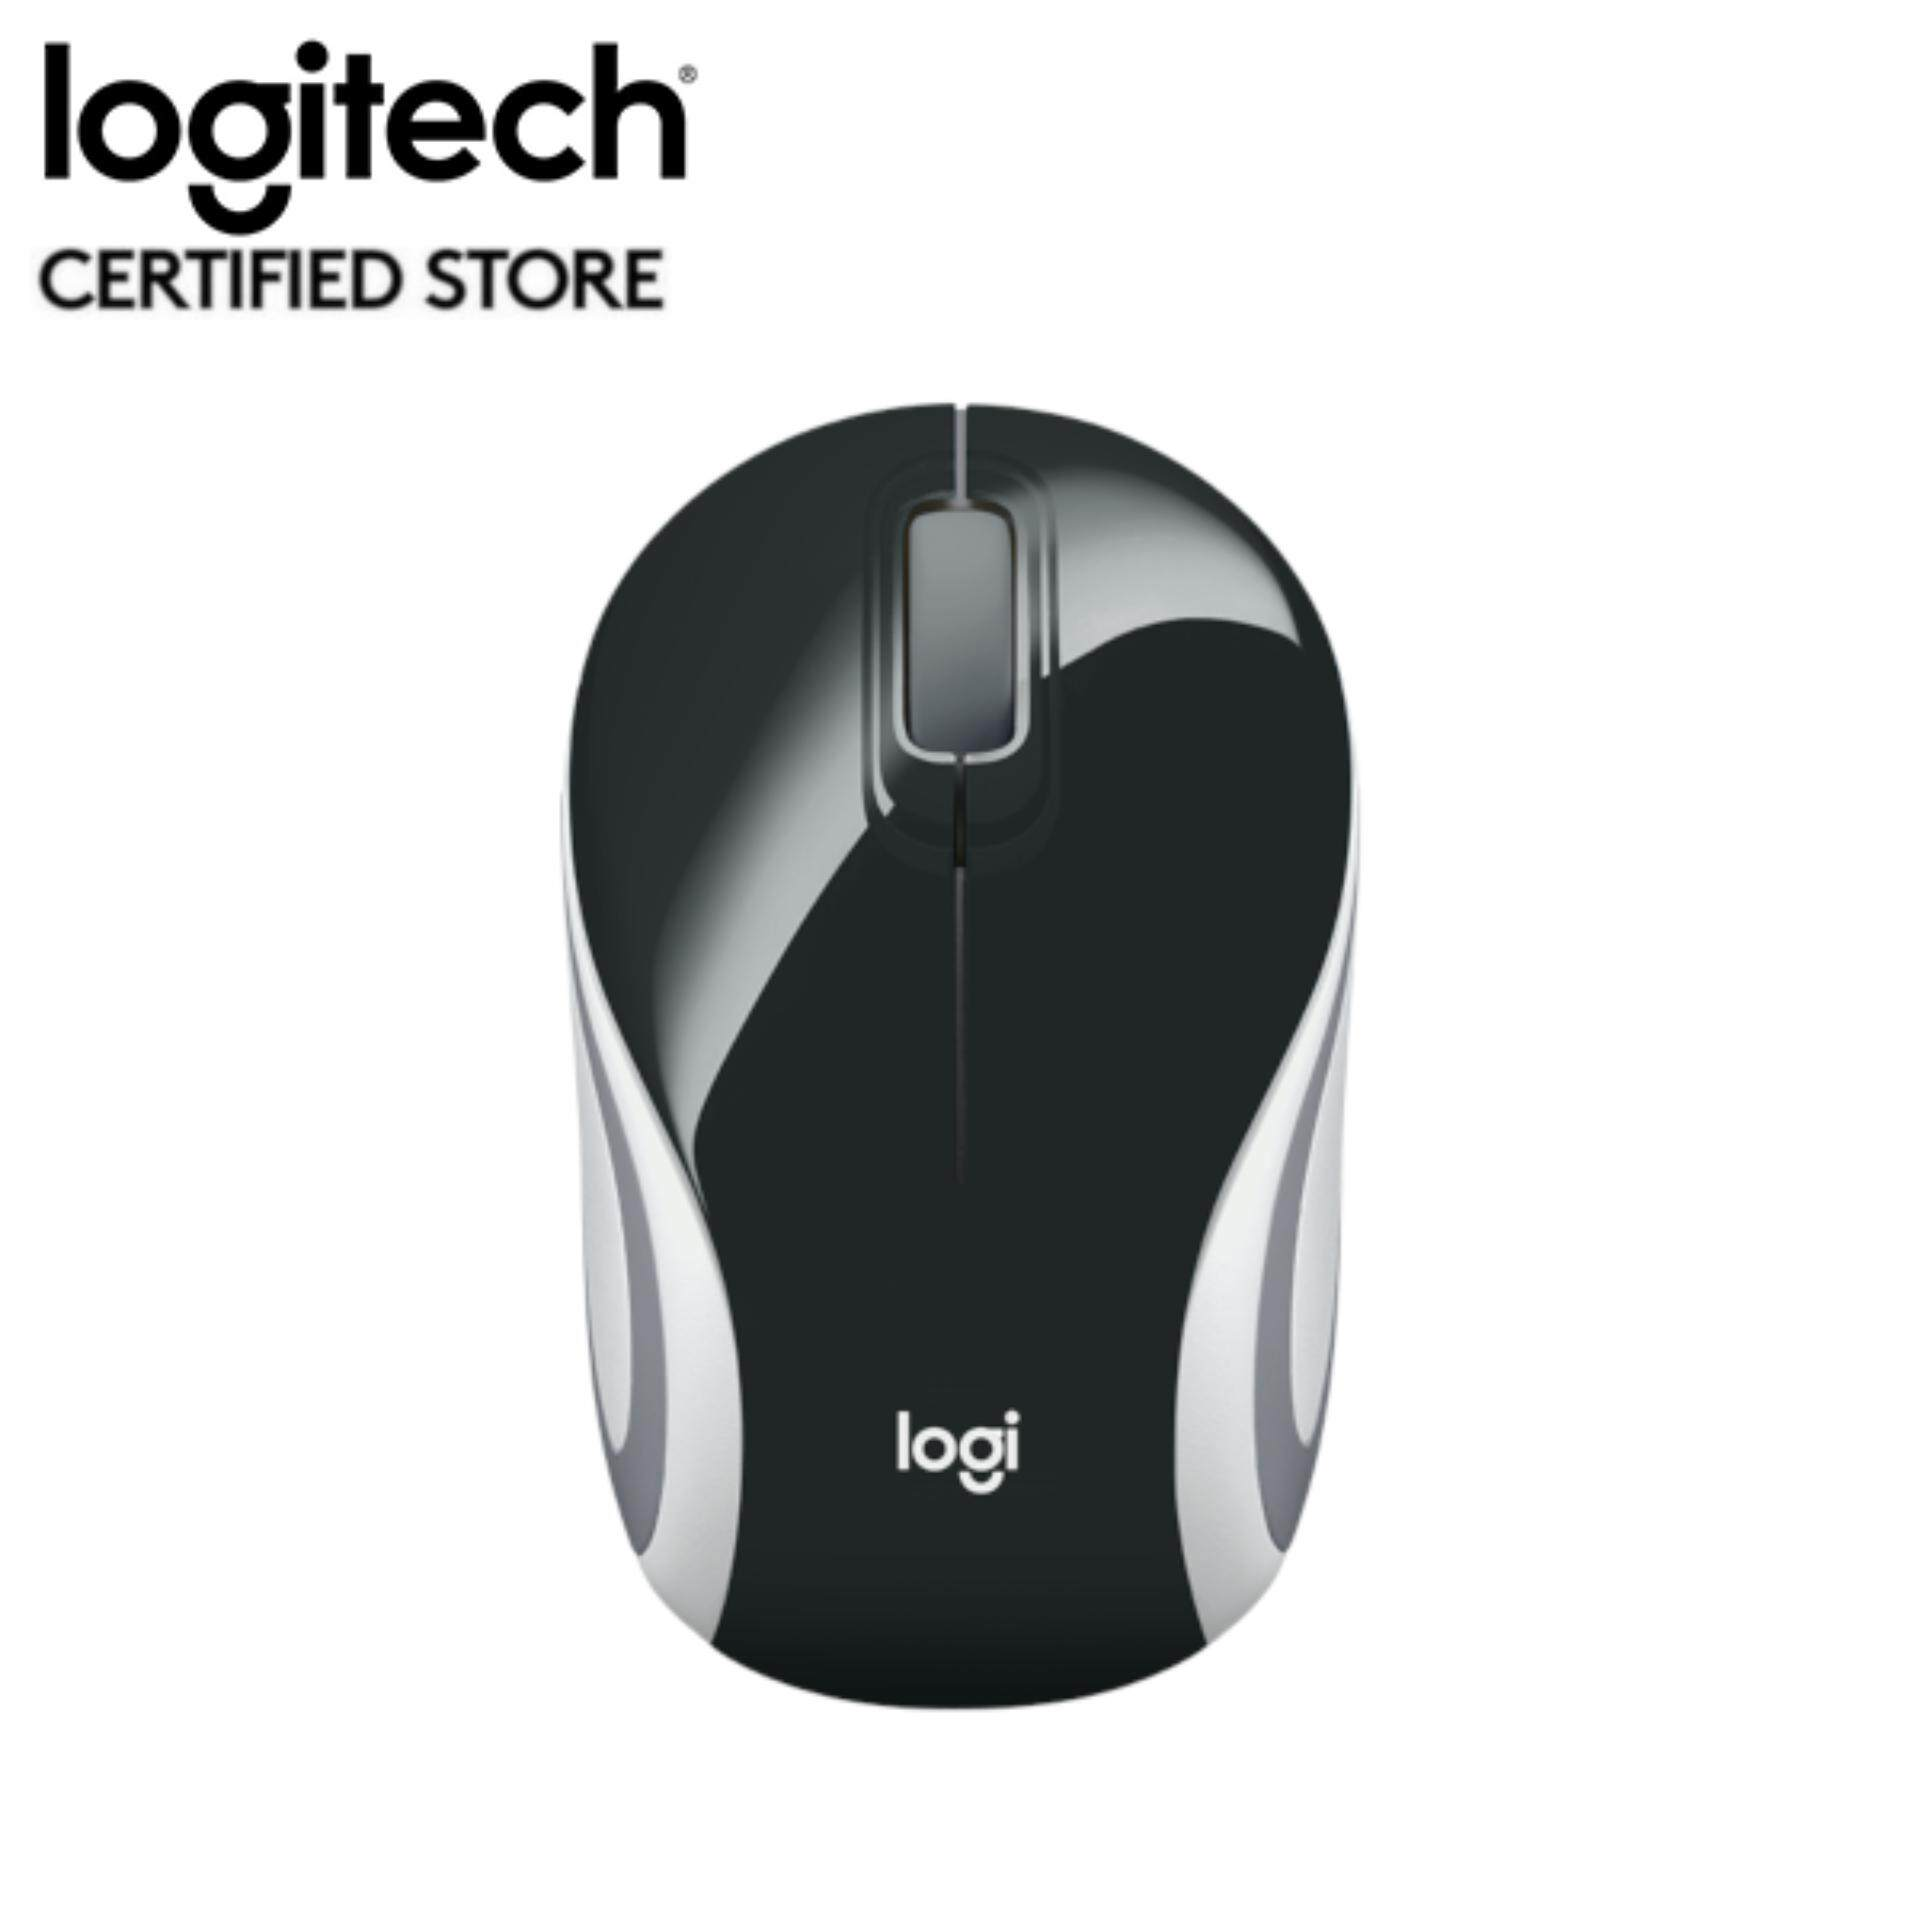 Logitech M187 Wireless Mini Mouse - Black (910-002741) Malaysia